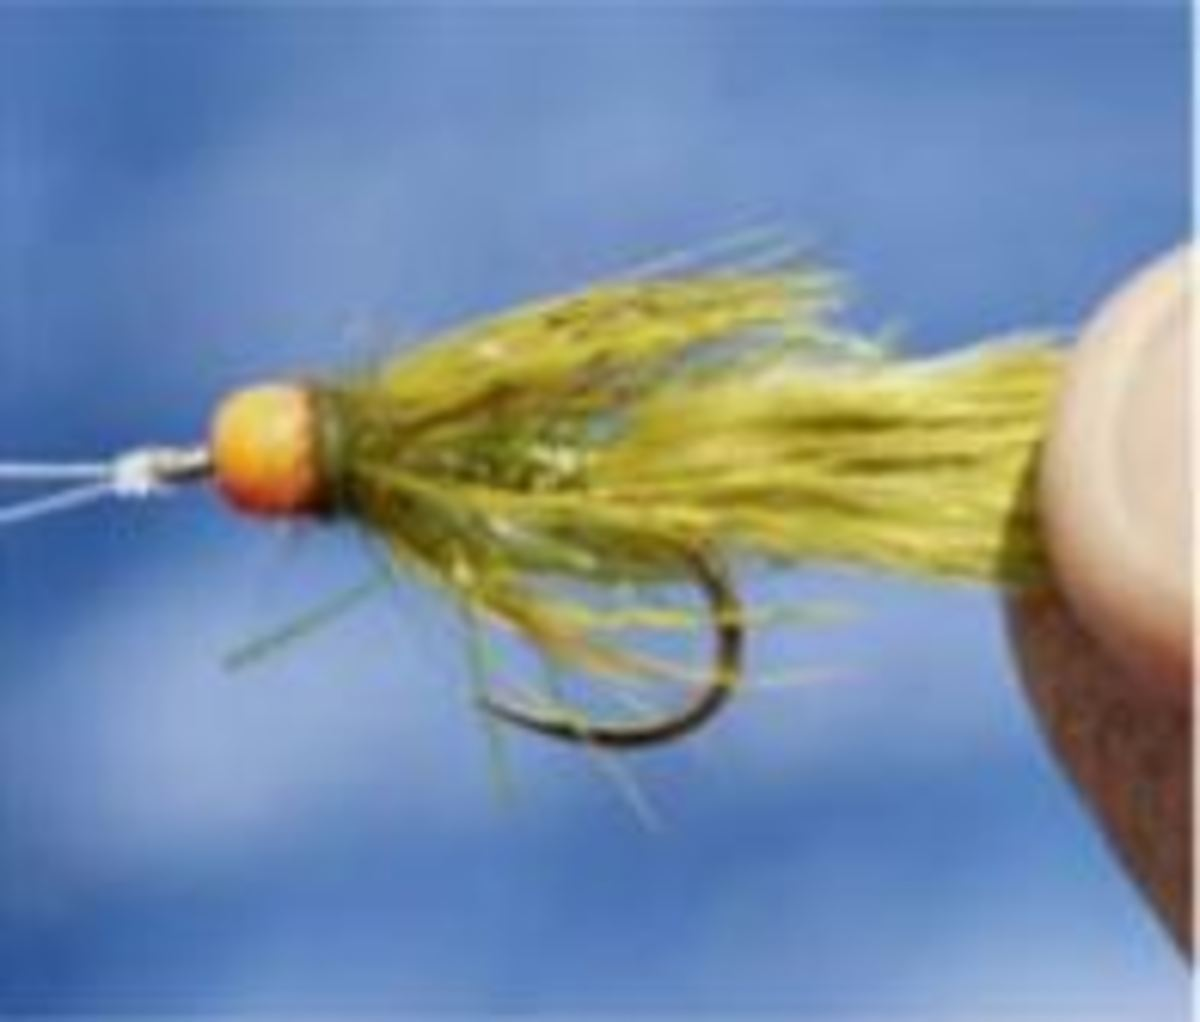 Choose a weighted fly with a marabou tail